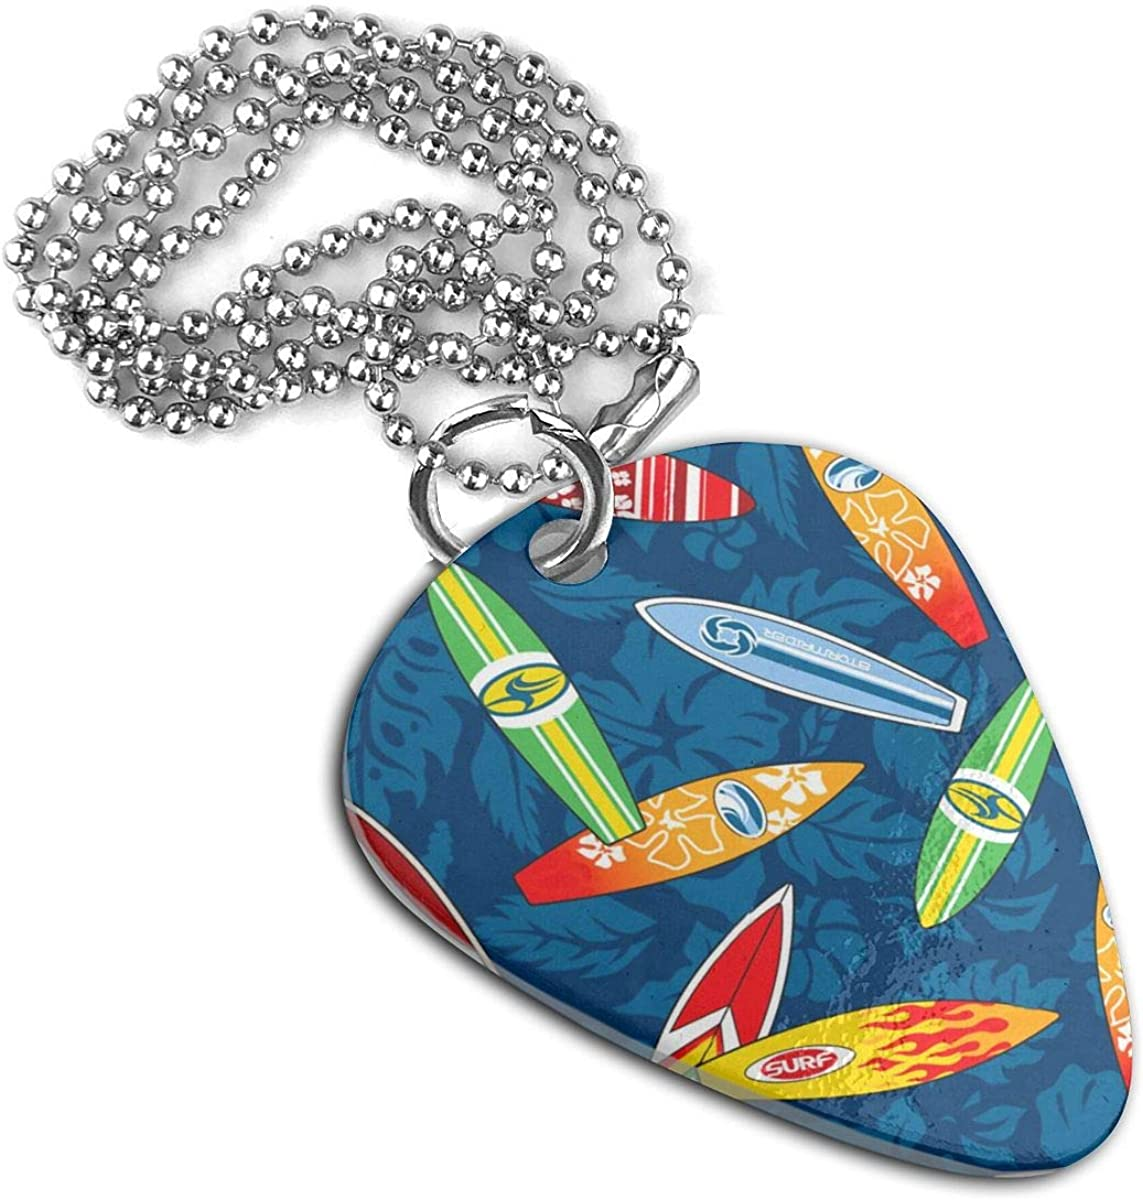 Surfboard Hibiscus Floral Custom Guitar Pick Pendant Necklace Keychain